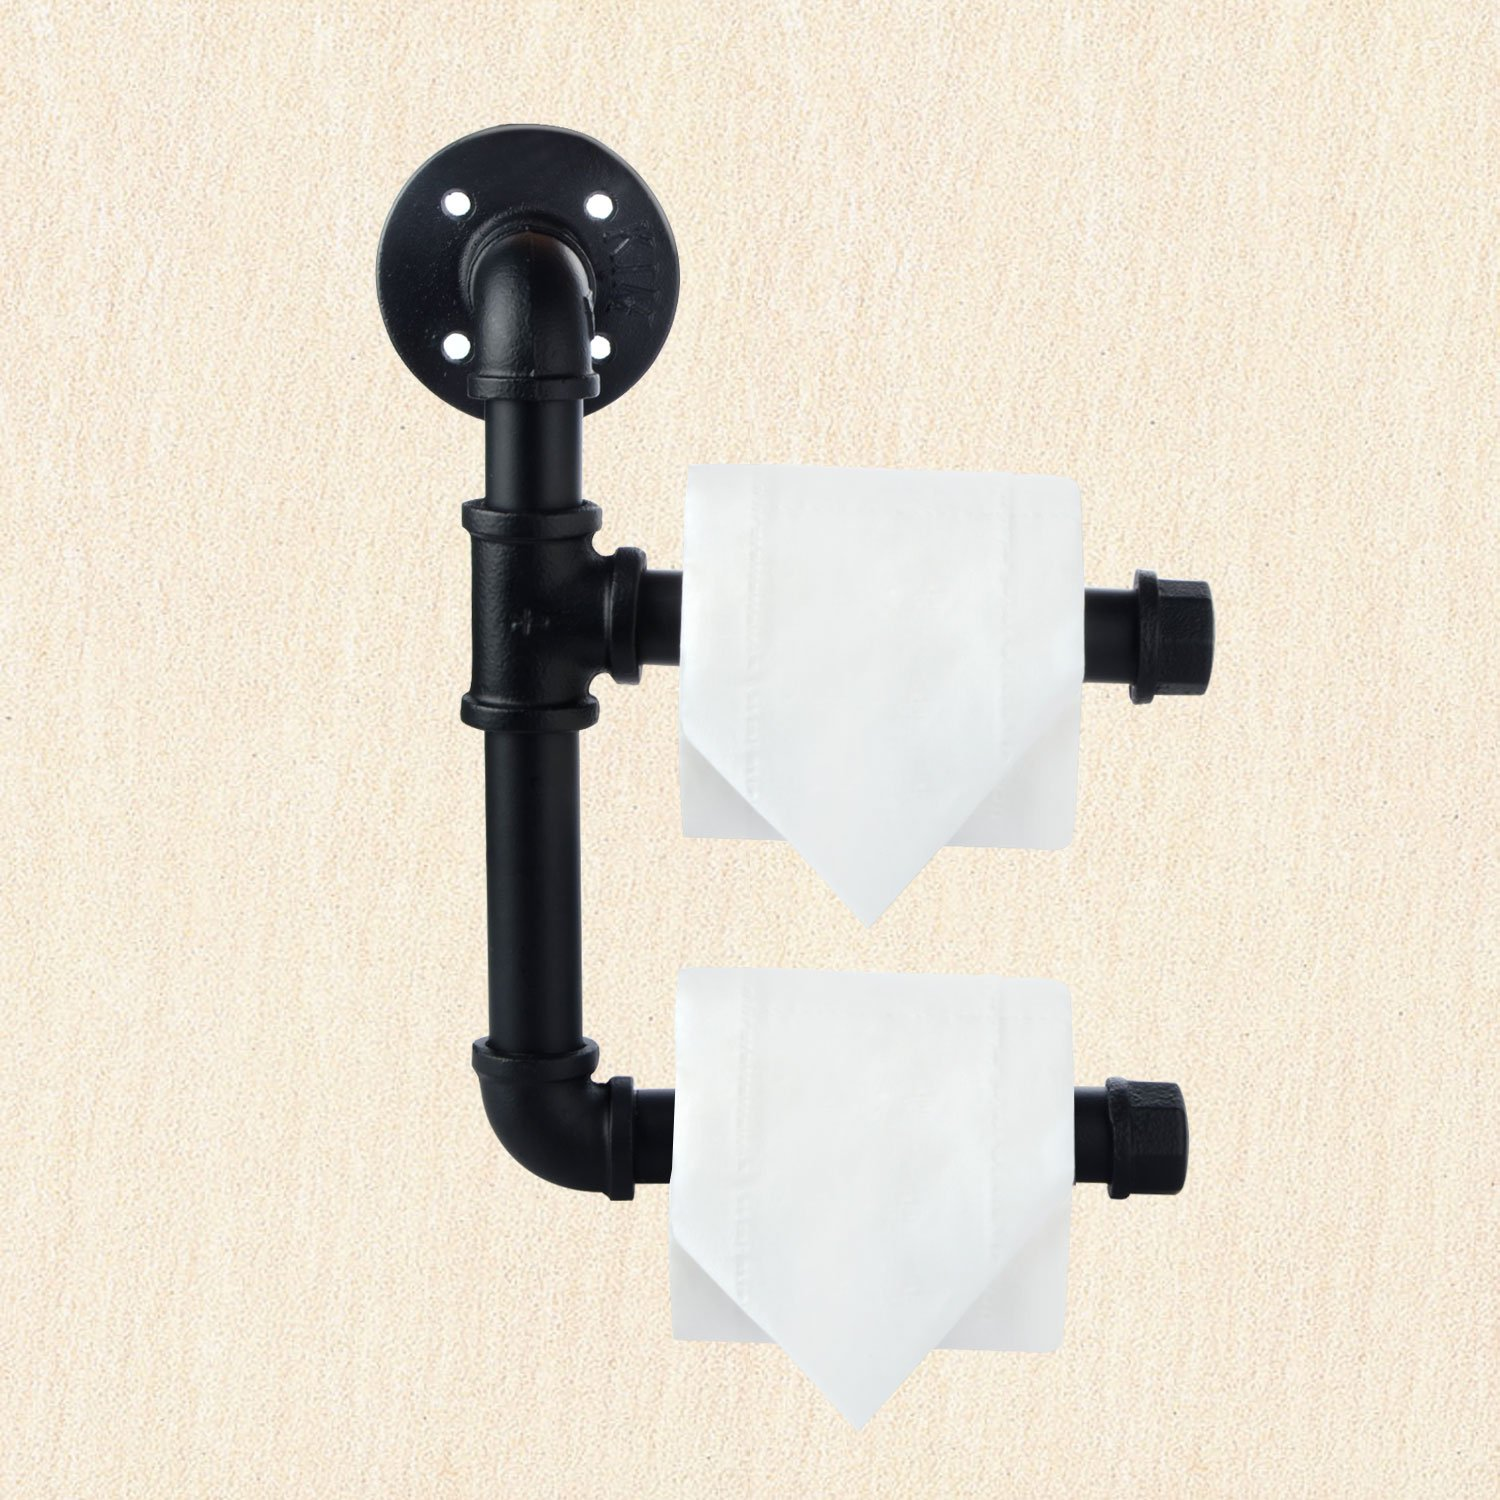 DOOLLAND Toilet Paper Holders Industrial Iron Pipe Shelf//Toilet Tissue Roll Holder Black with Wall Mounted Bathroom Shelf